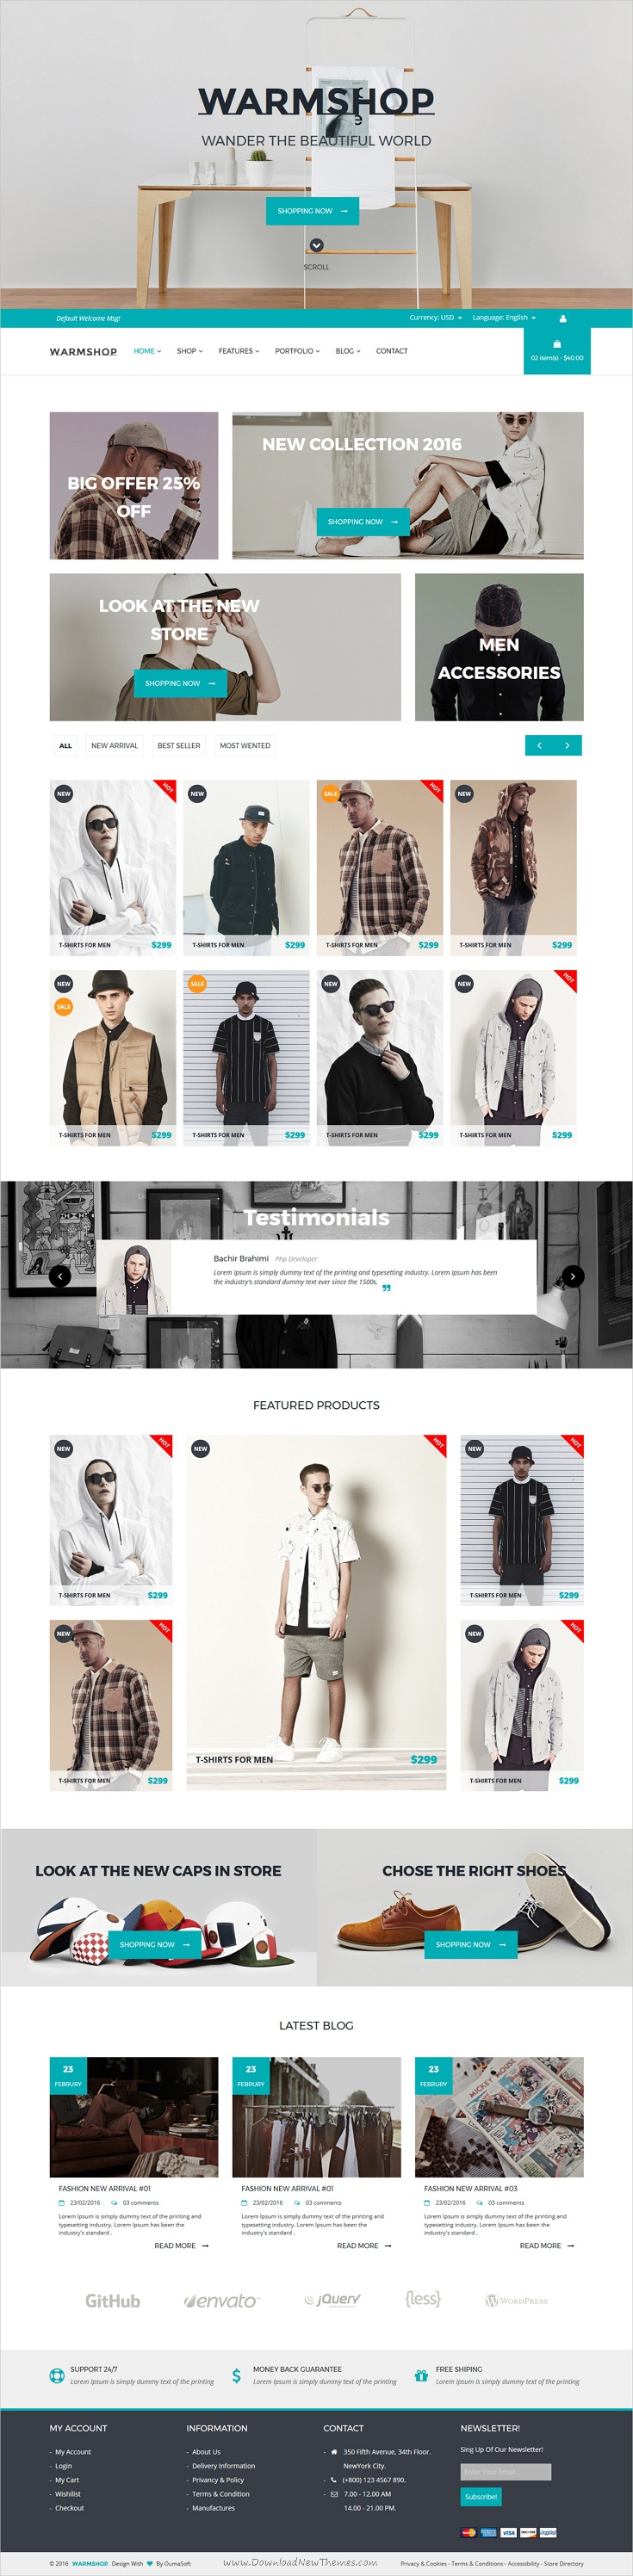 Warmshop Minimal e-Commerce Html Template | Minimal and eCommerce